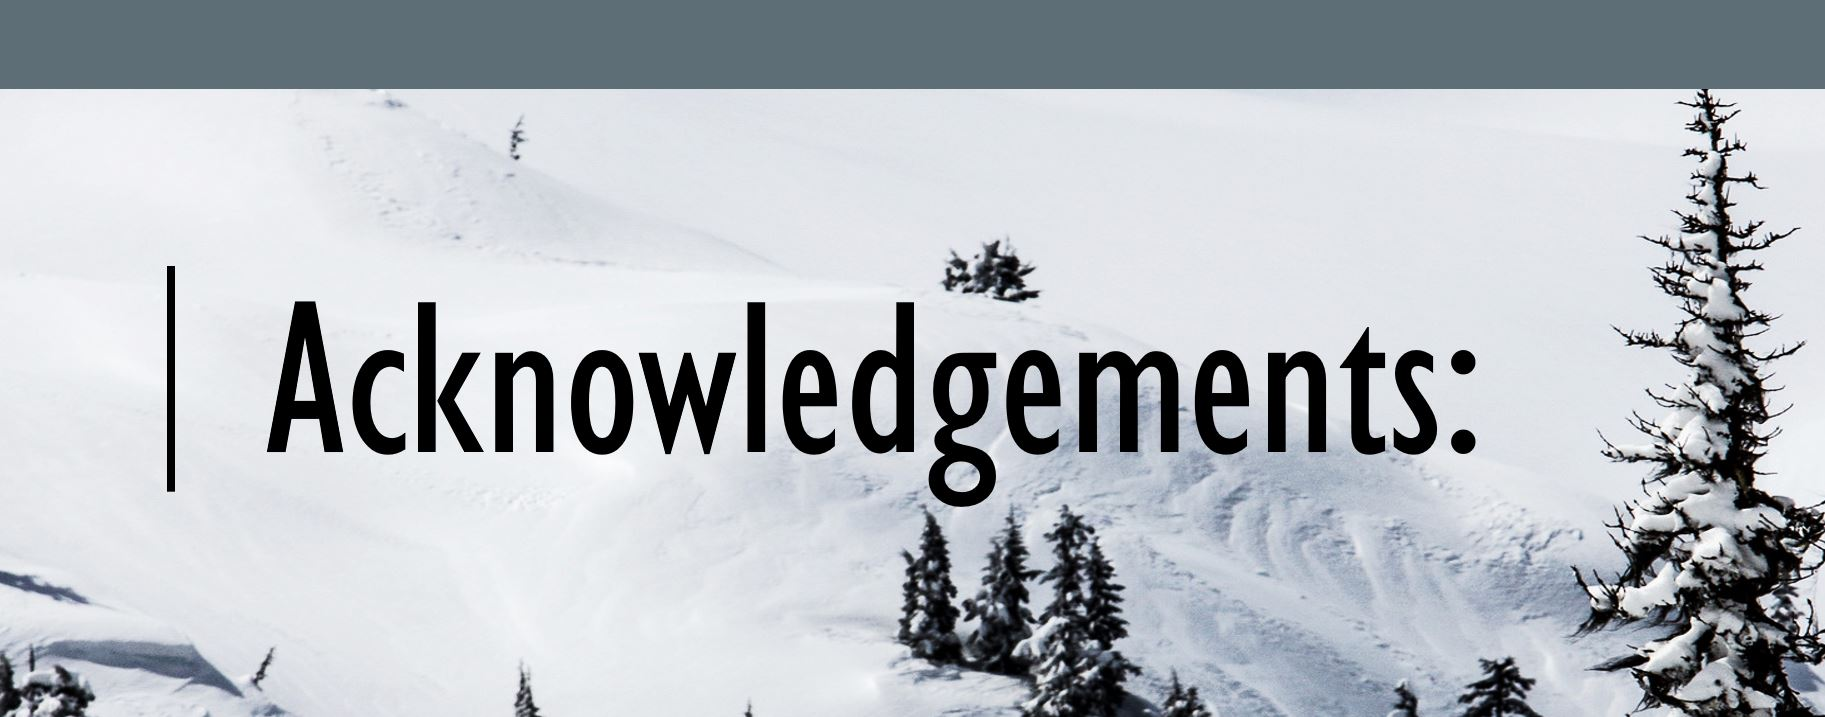 Acknowledgements. Background of snowy mountain top with fern trees.